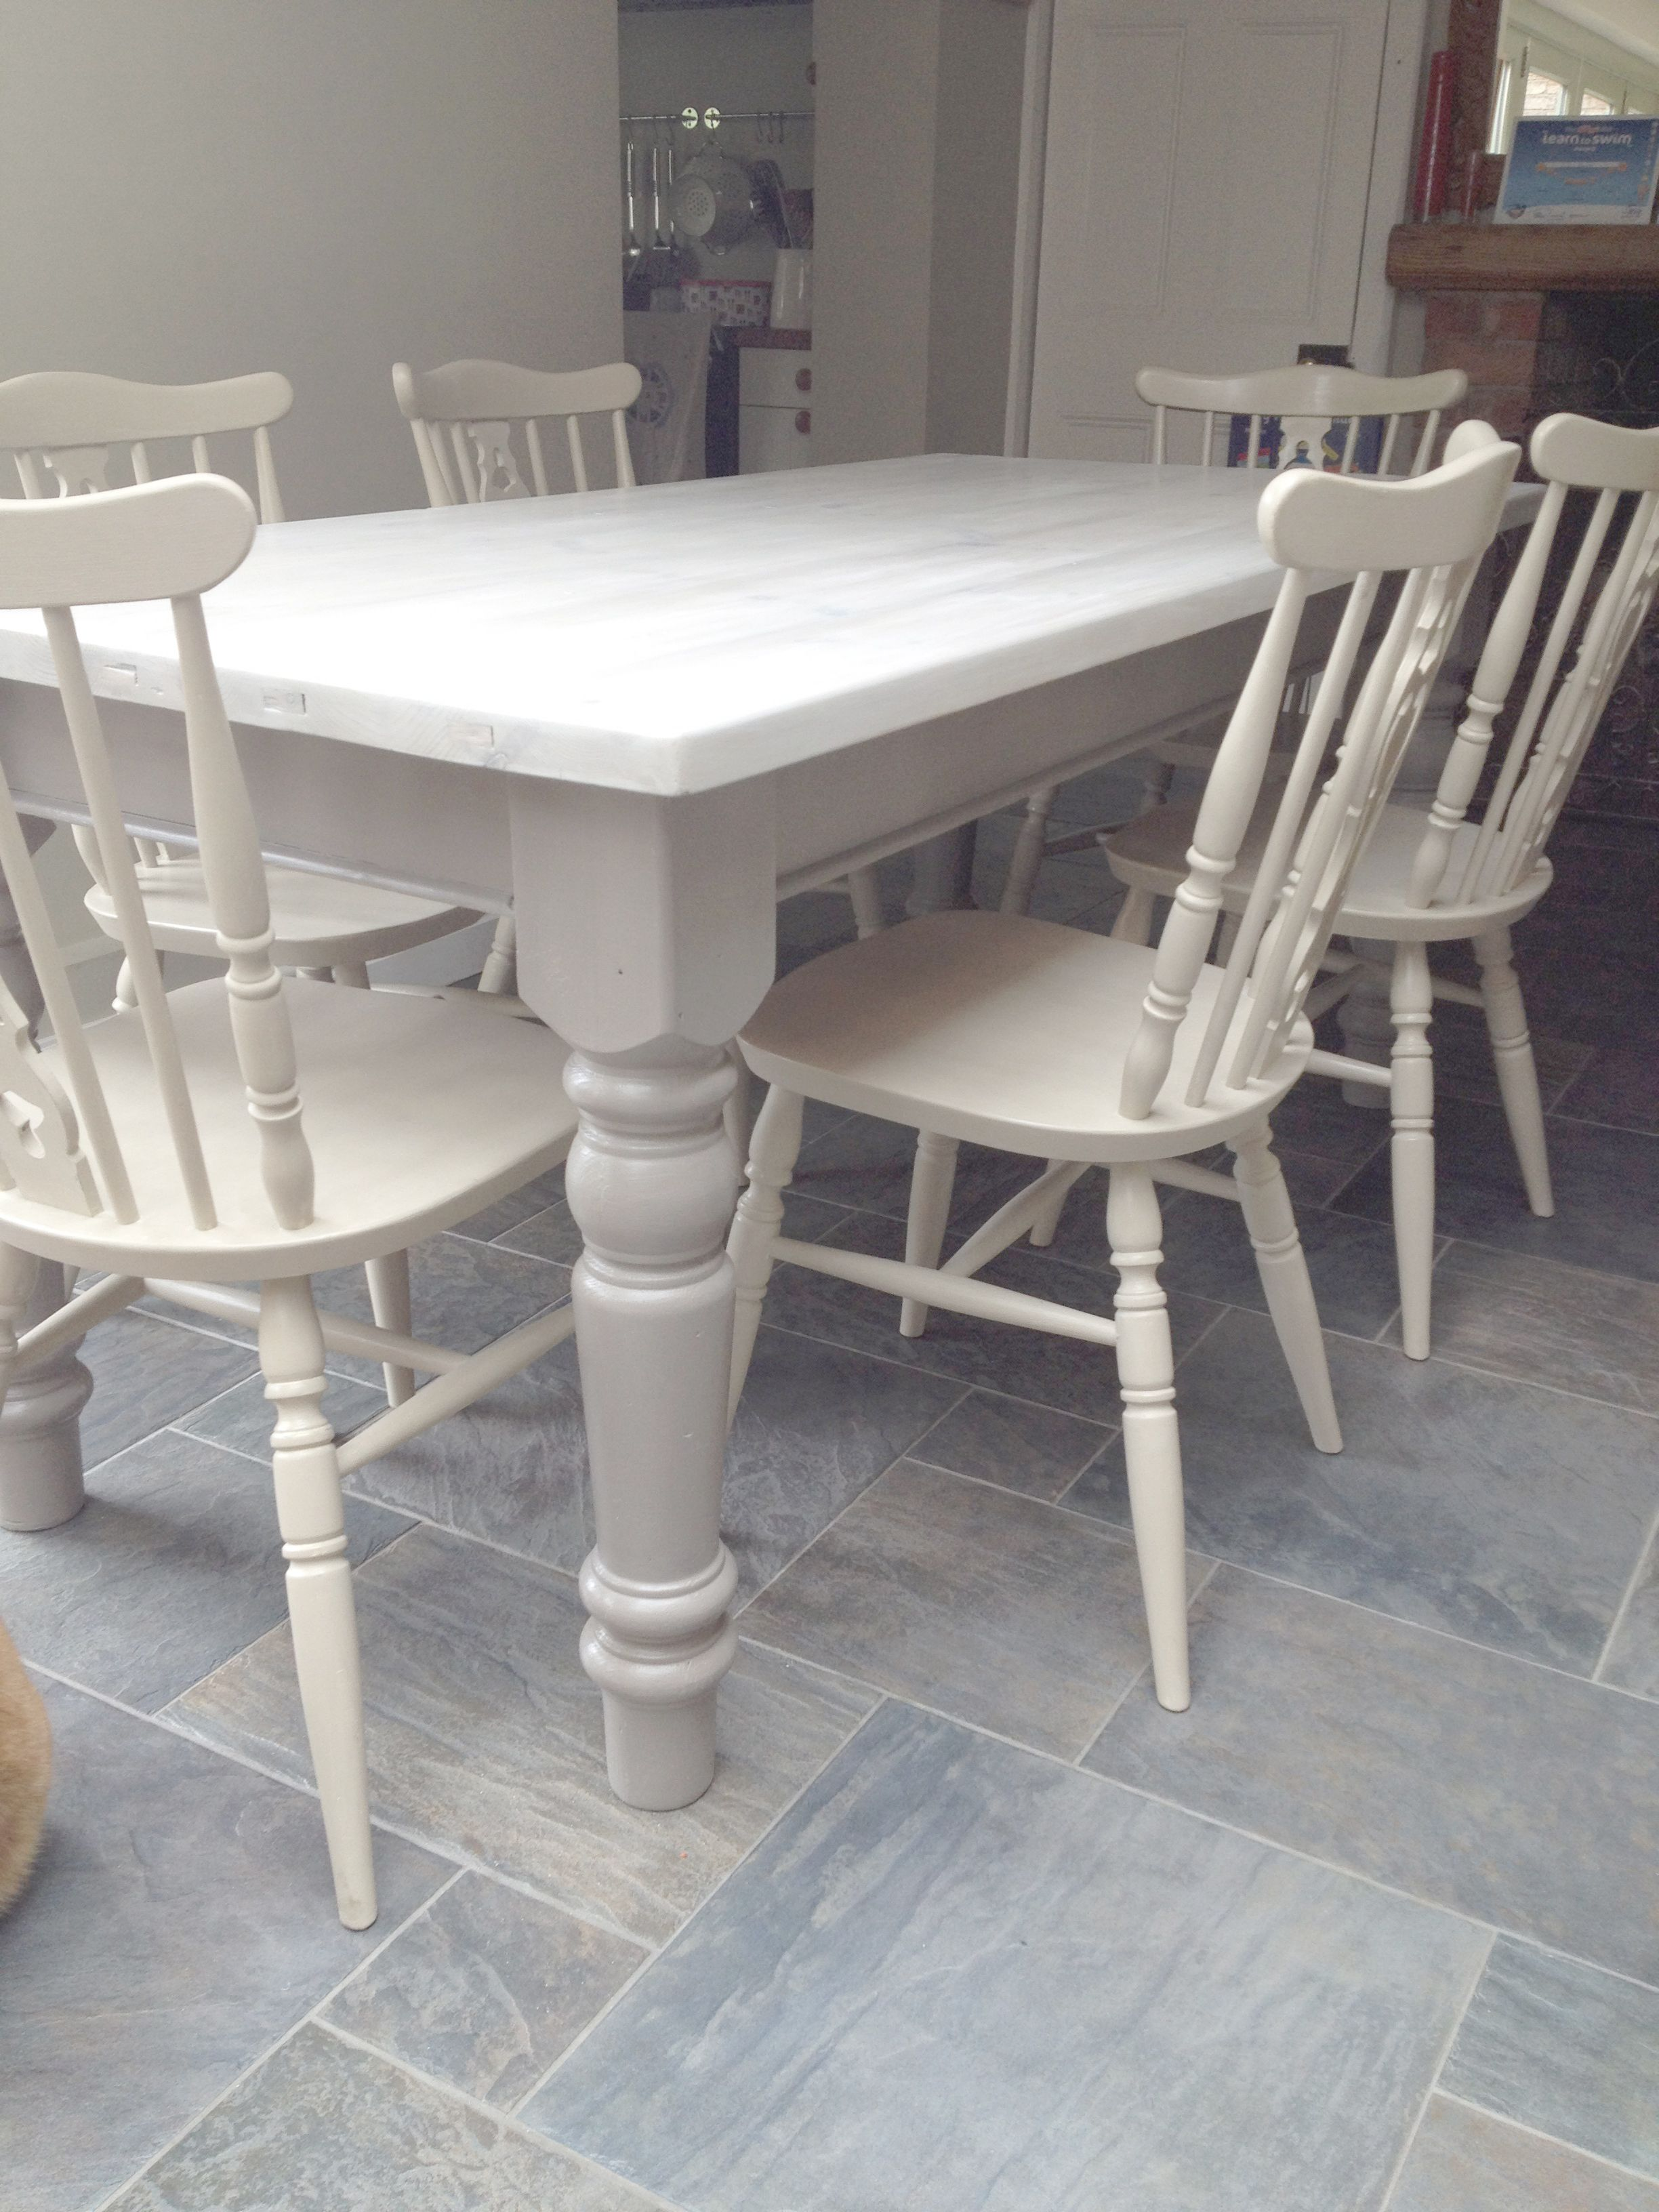 Grey Kitchen Table And Chairs Adjustable Height Chair Dining Given A 2 Colour Distress Using Annie Sloan Cream Over Country Legs Painted French Linen Top White Washed Old